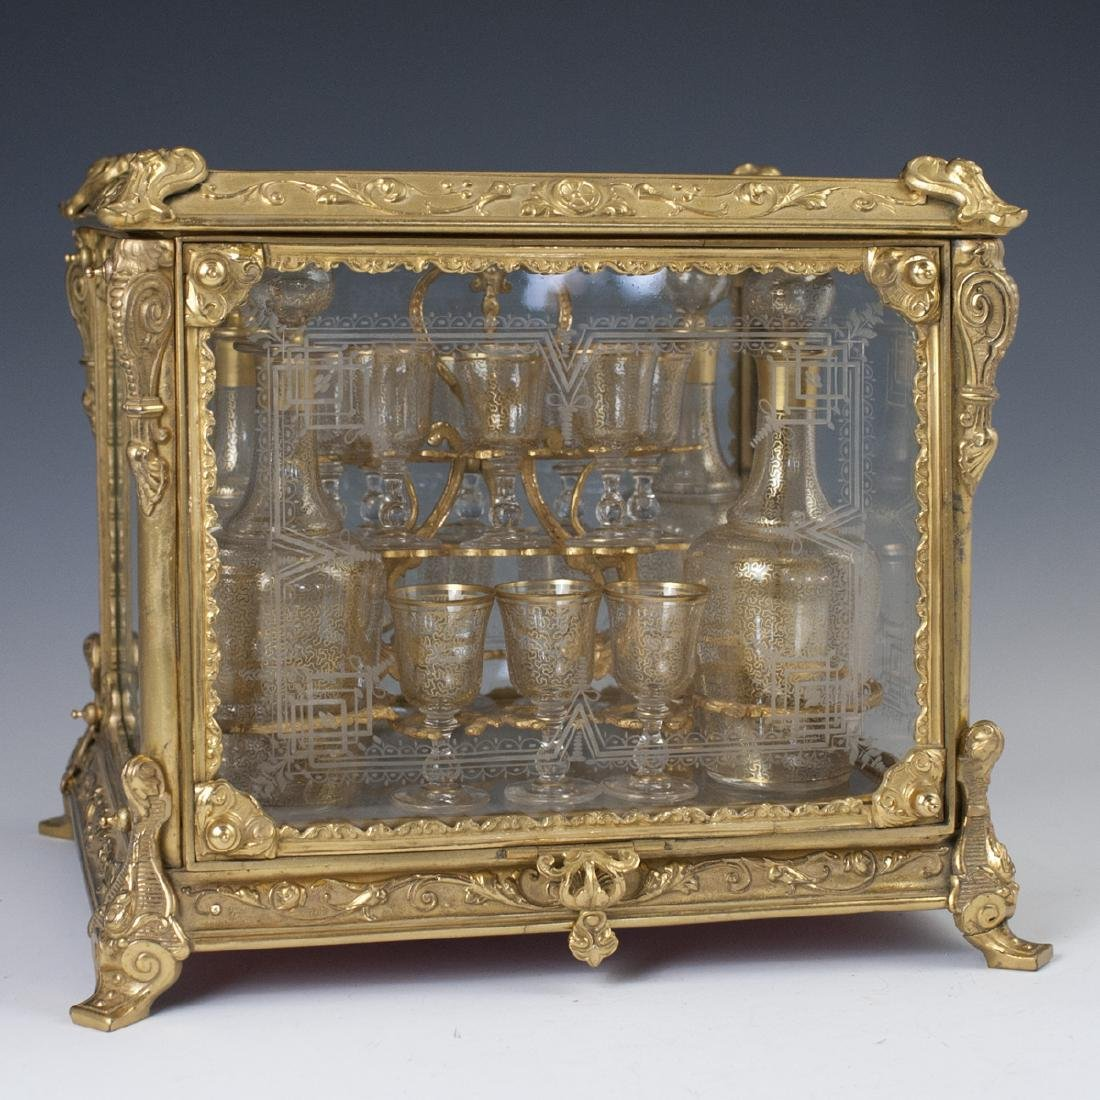 Antique French Ormolu Etched Crystal Tantalus Set - 2